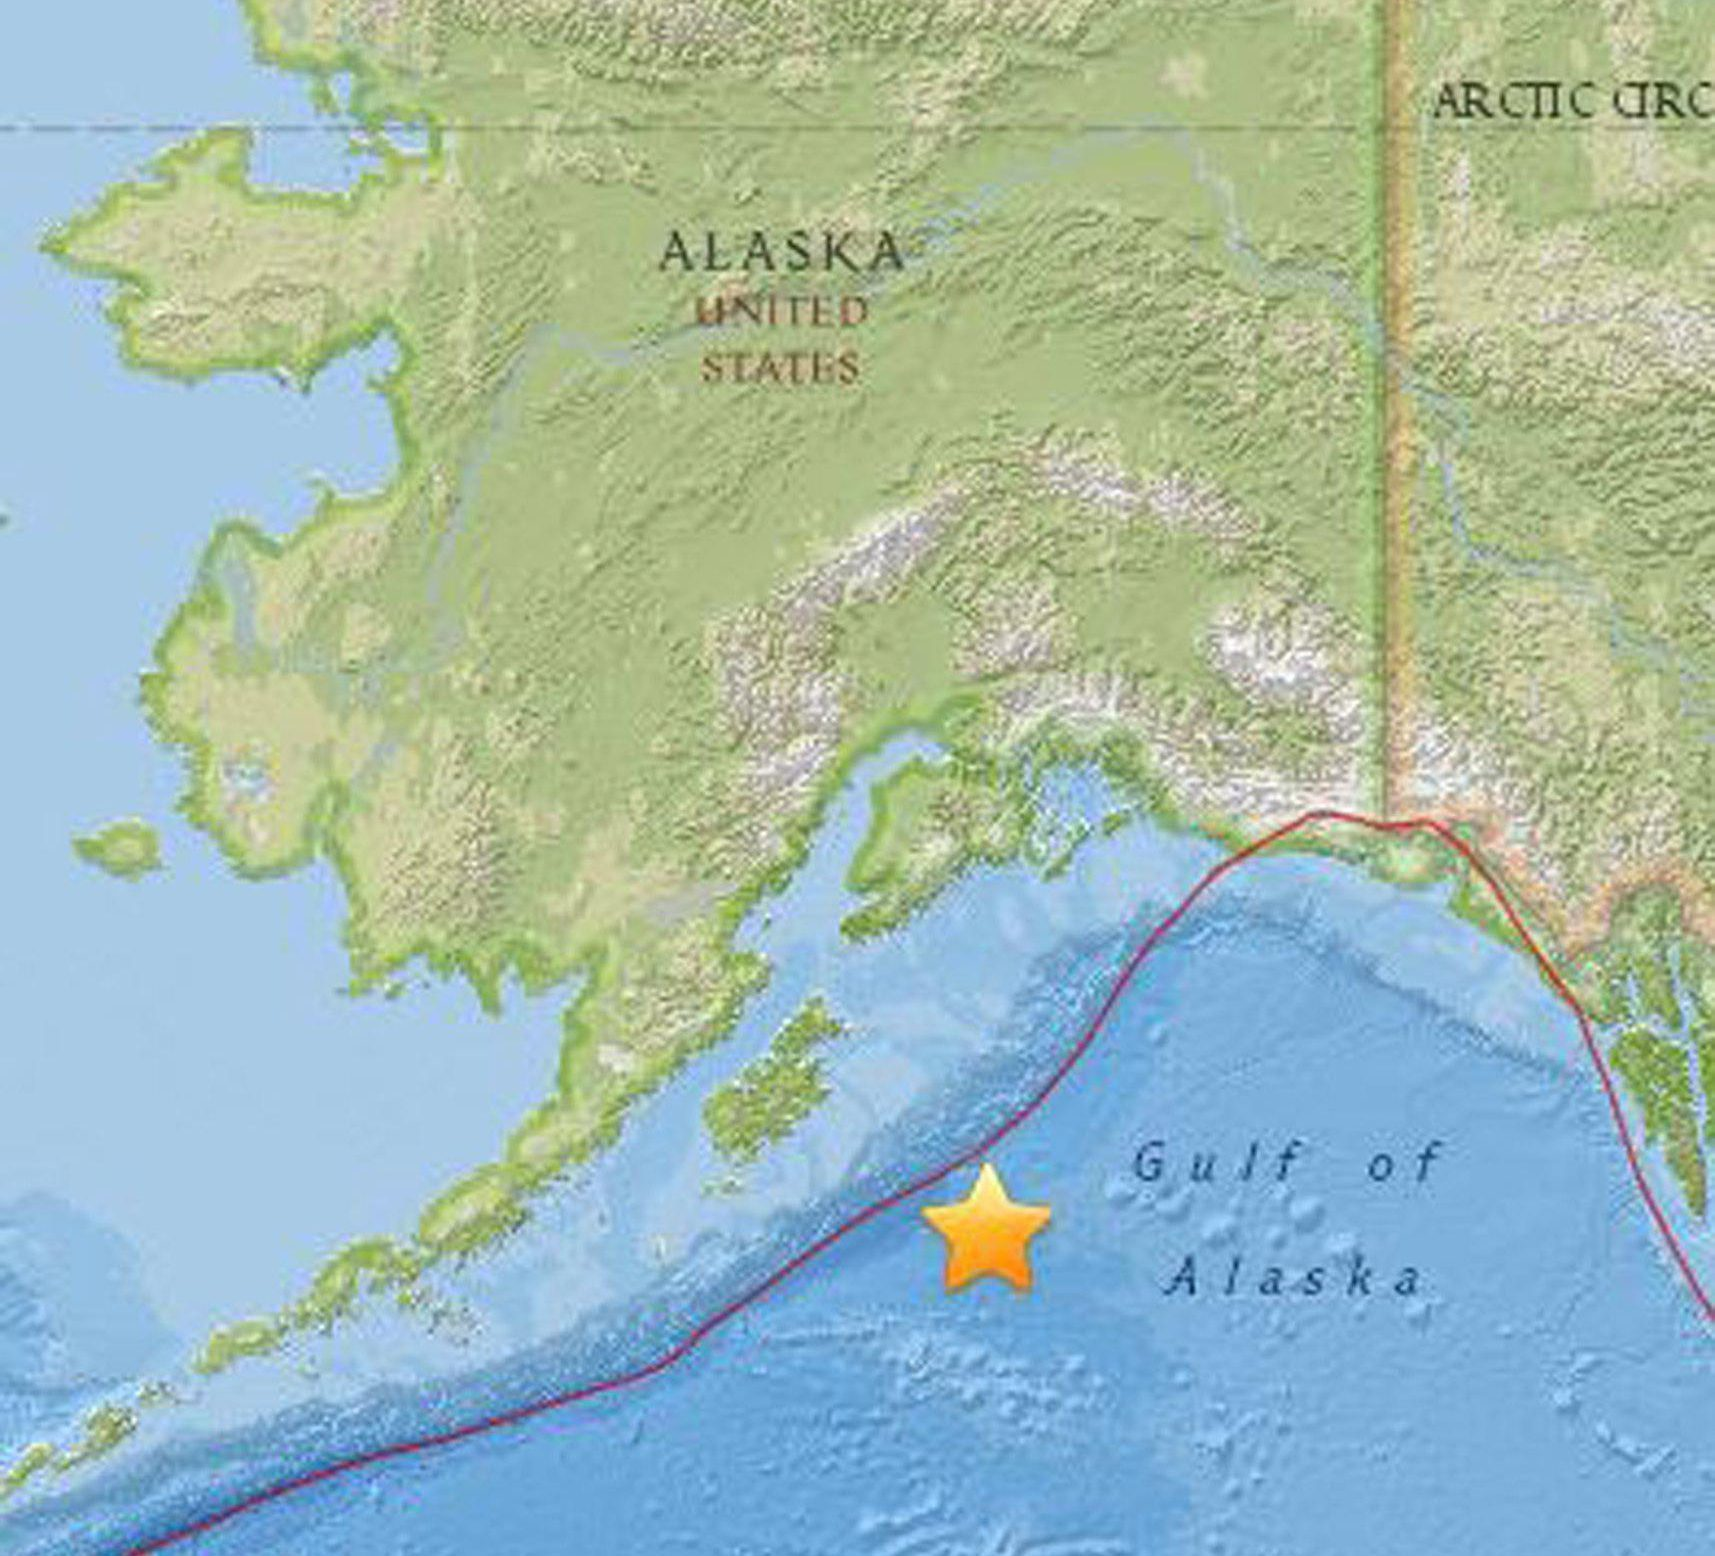 Alaska earthquake sparks tsunami warnings across US West Coast and Hawaii after massive 8.2 magnitude tremor